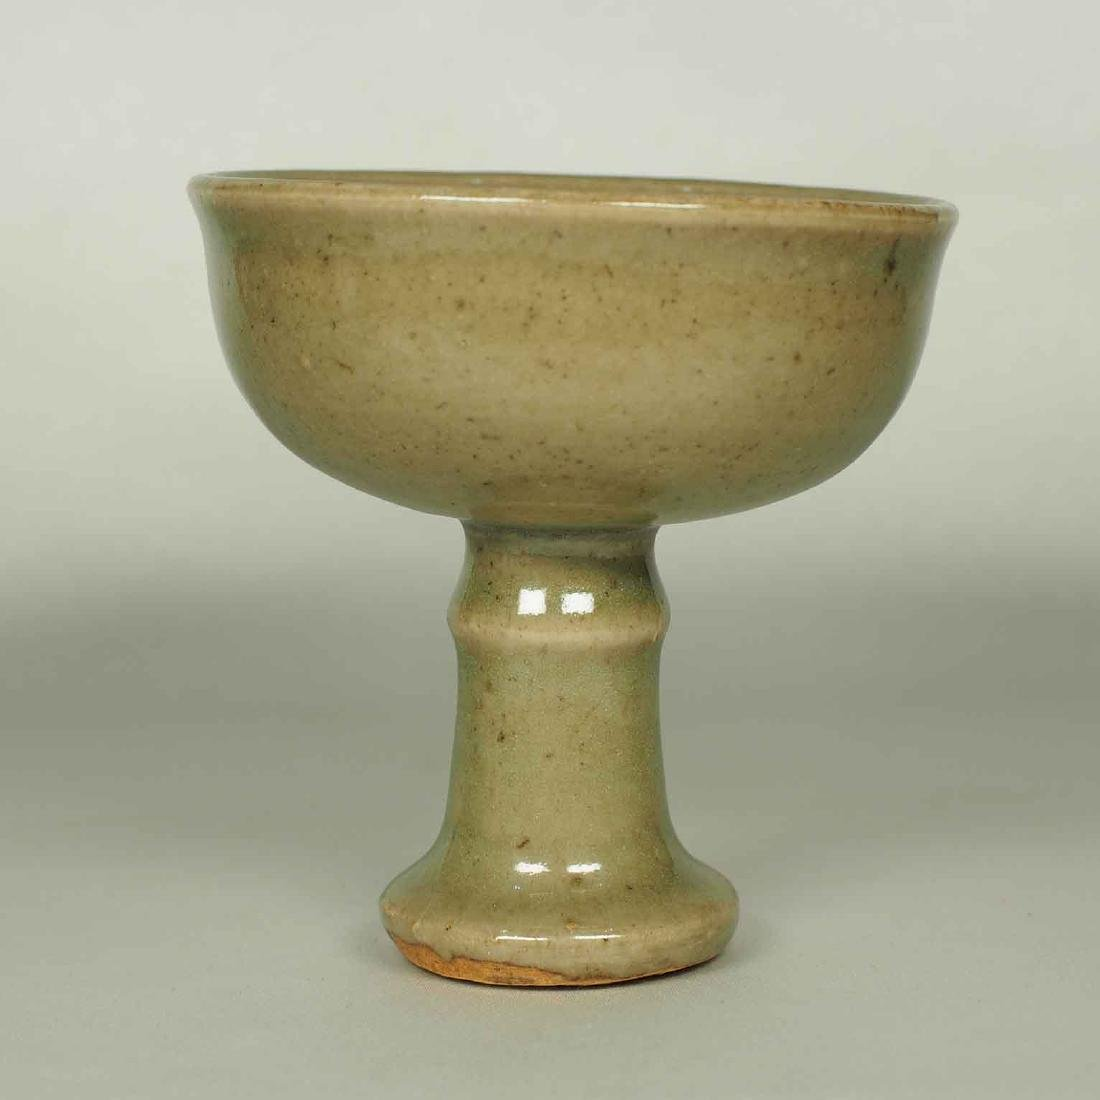 Celadon Stemcup with Incised Lotus Design, Yuan Dynasty